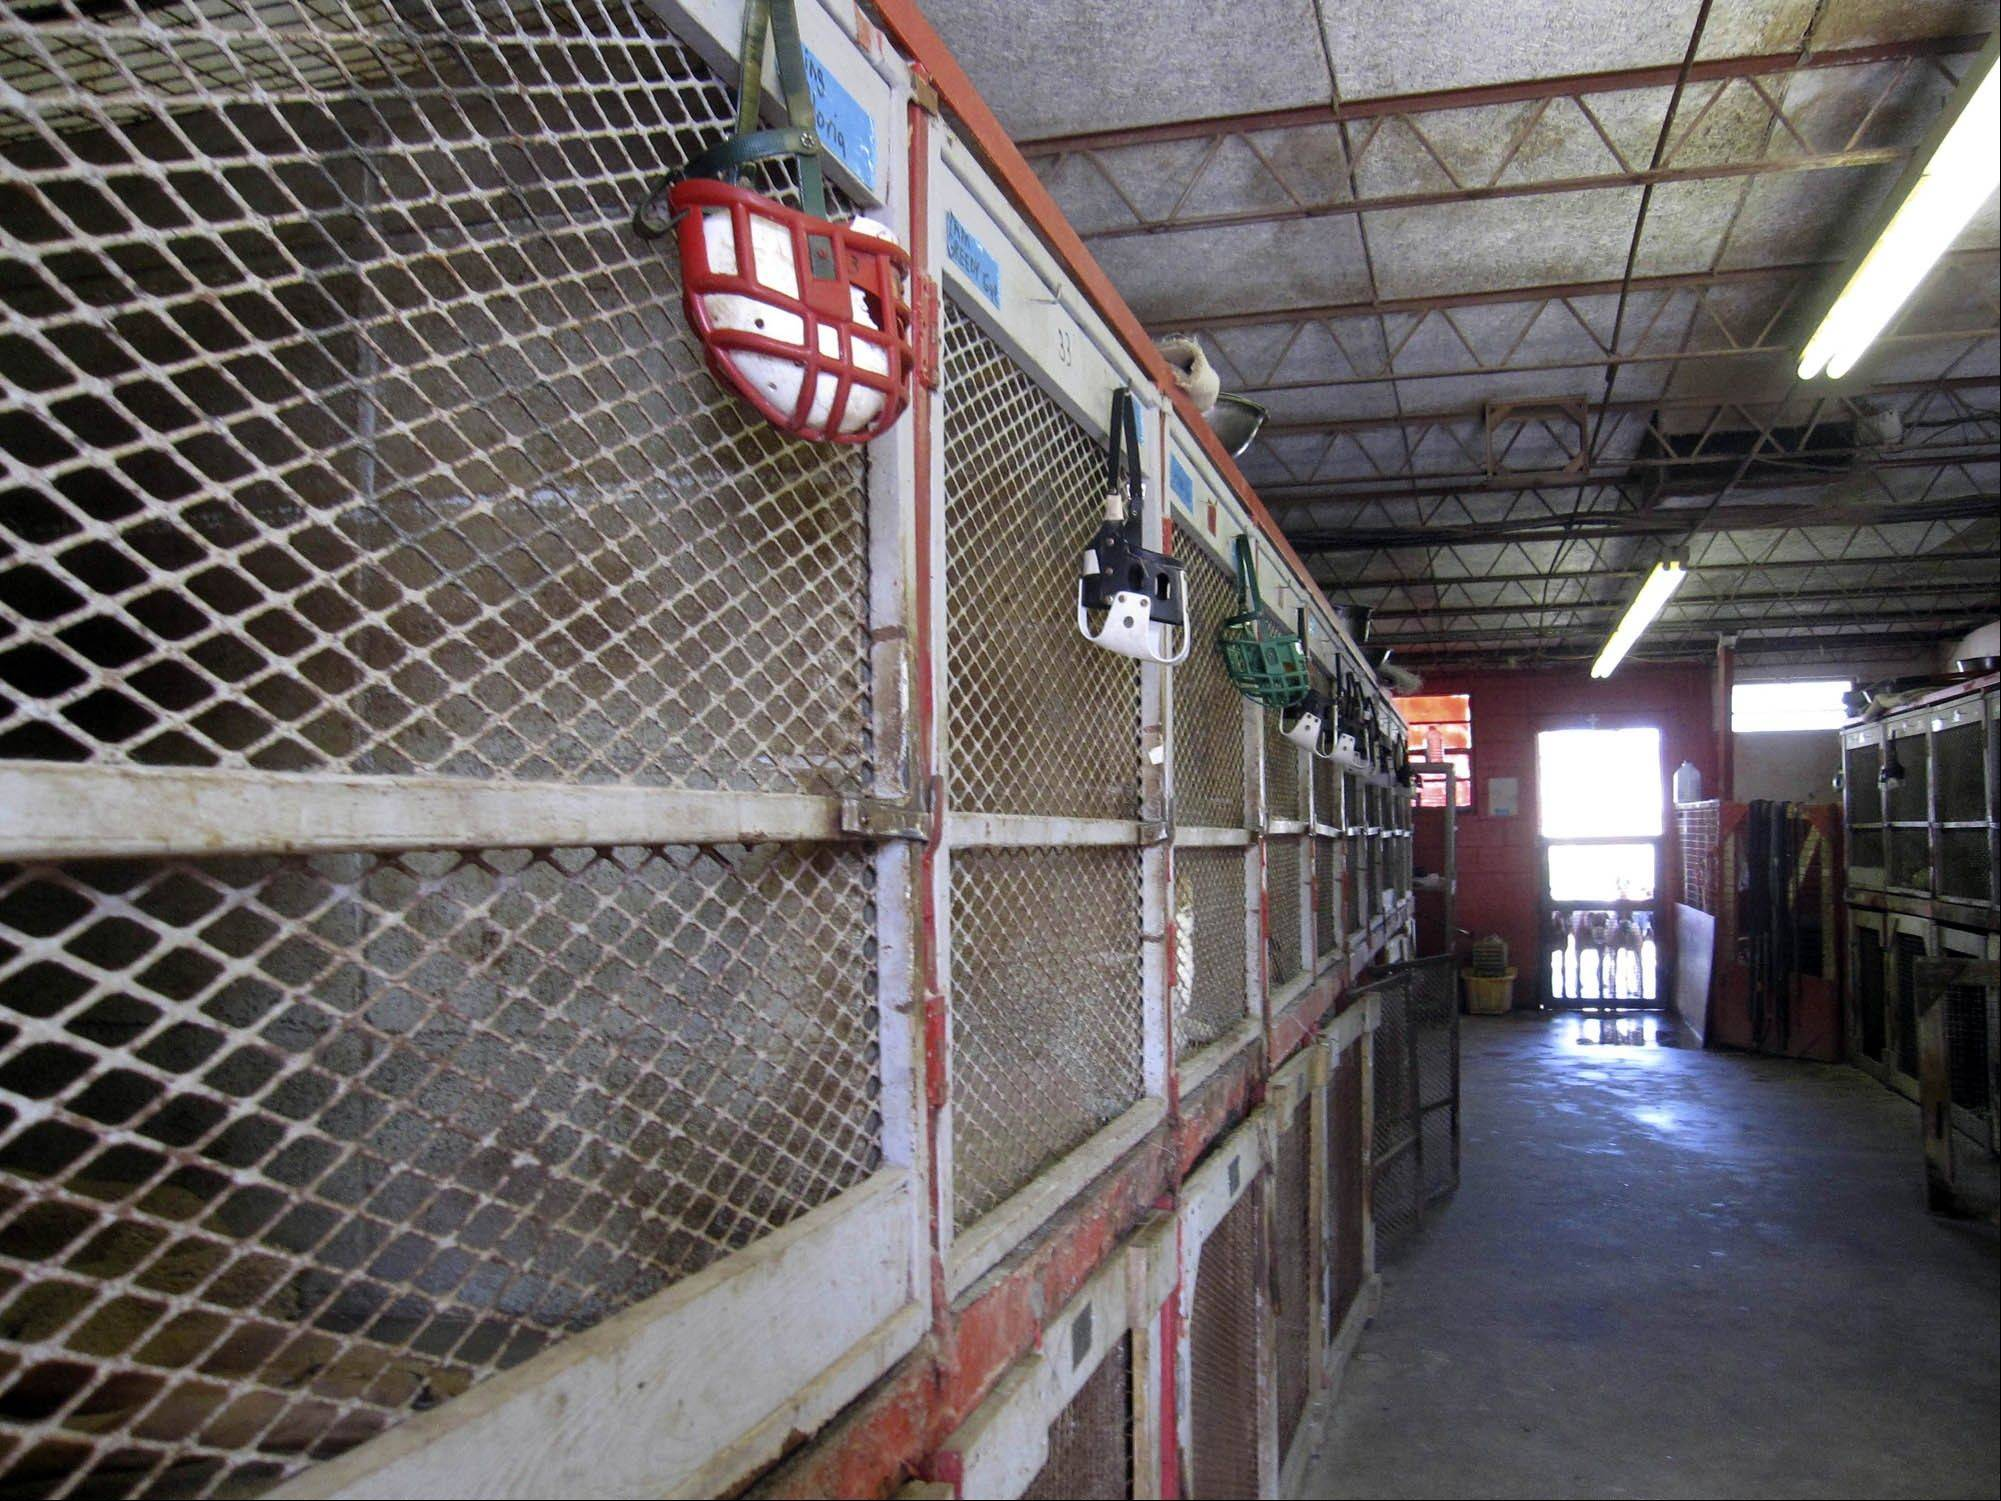 Stacked cages are shown at a racetrack kennel in Florida in April 2011. Florida currently has 13 racetracks in operation, the most in the U.S. by far.